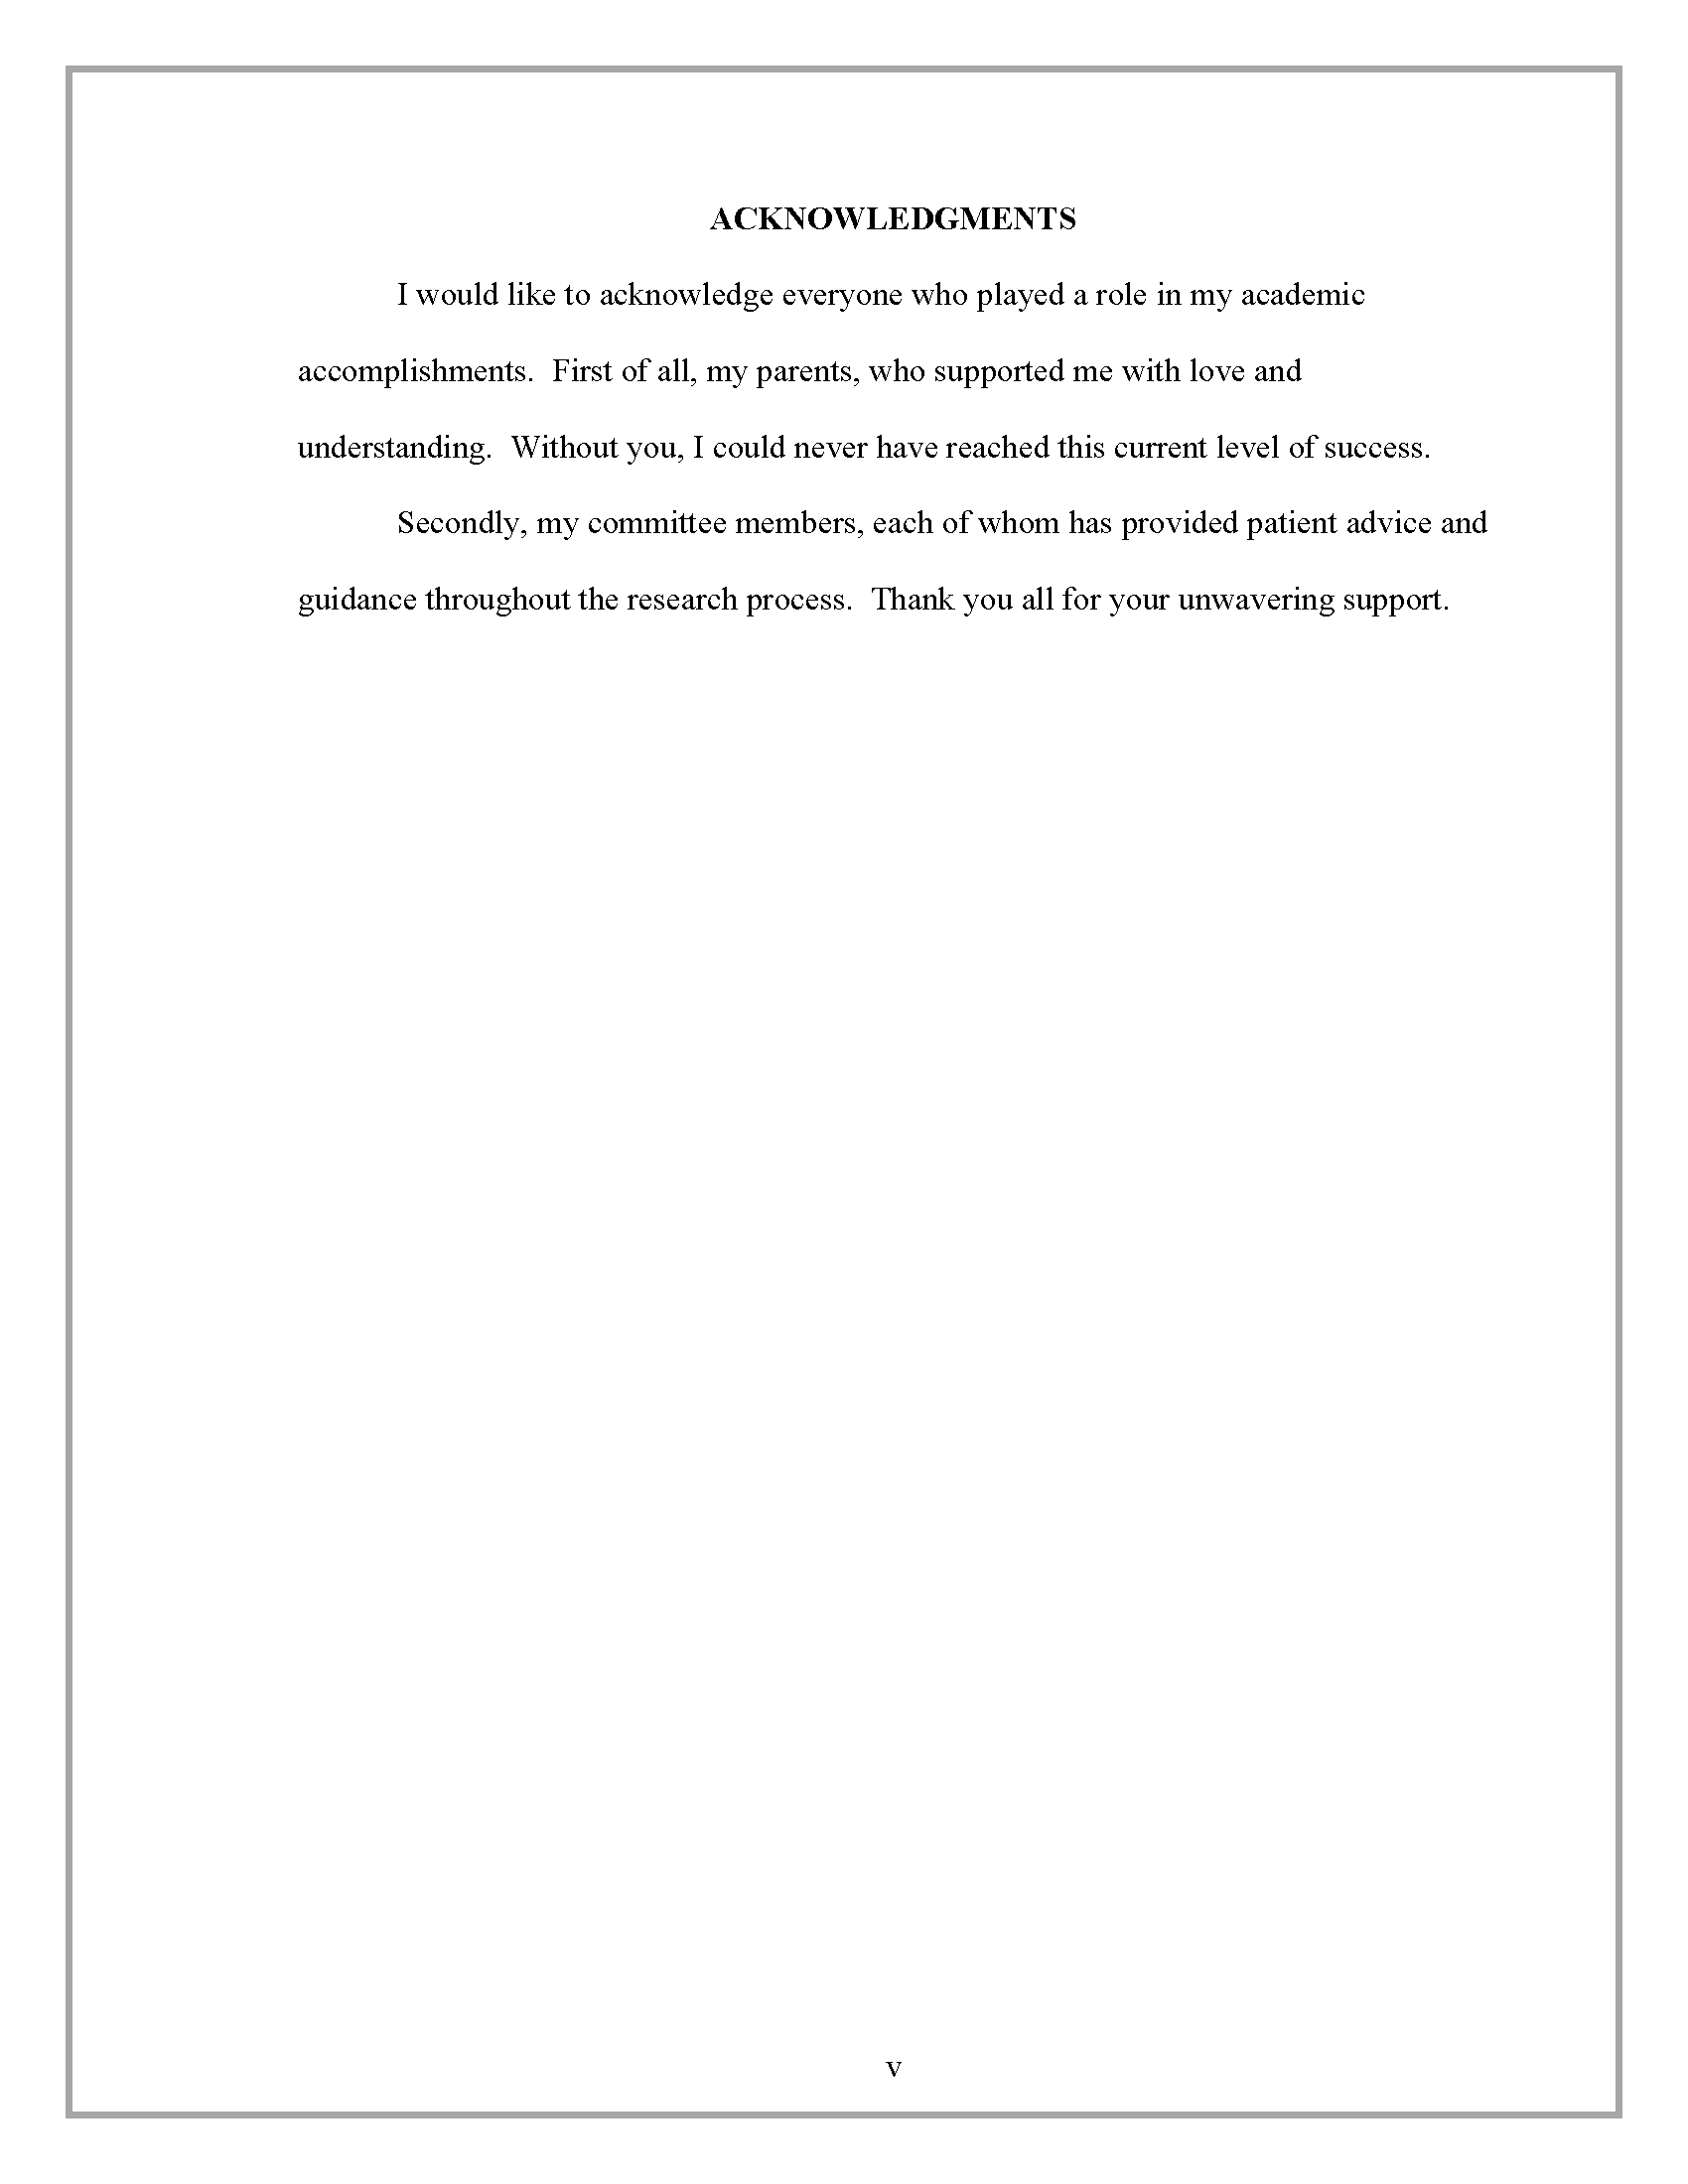 001 Example Of Acknowledgement In Research Paper Acknowledgment Border Remarkable Group For Students Dedication And Pdf Full